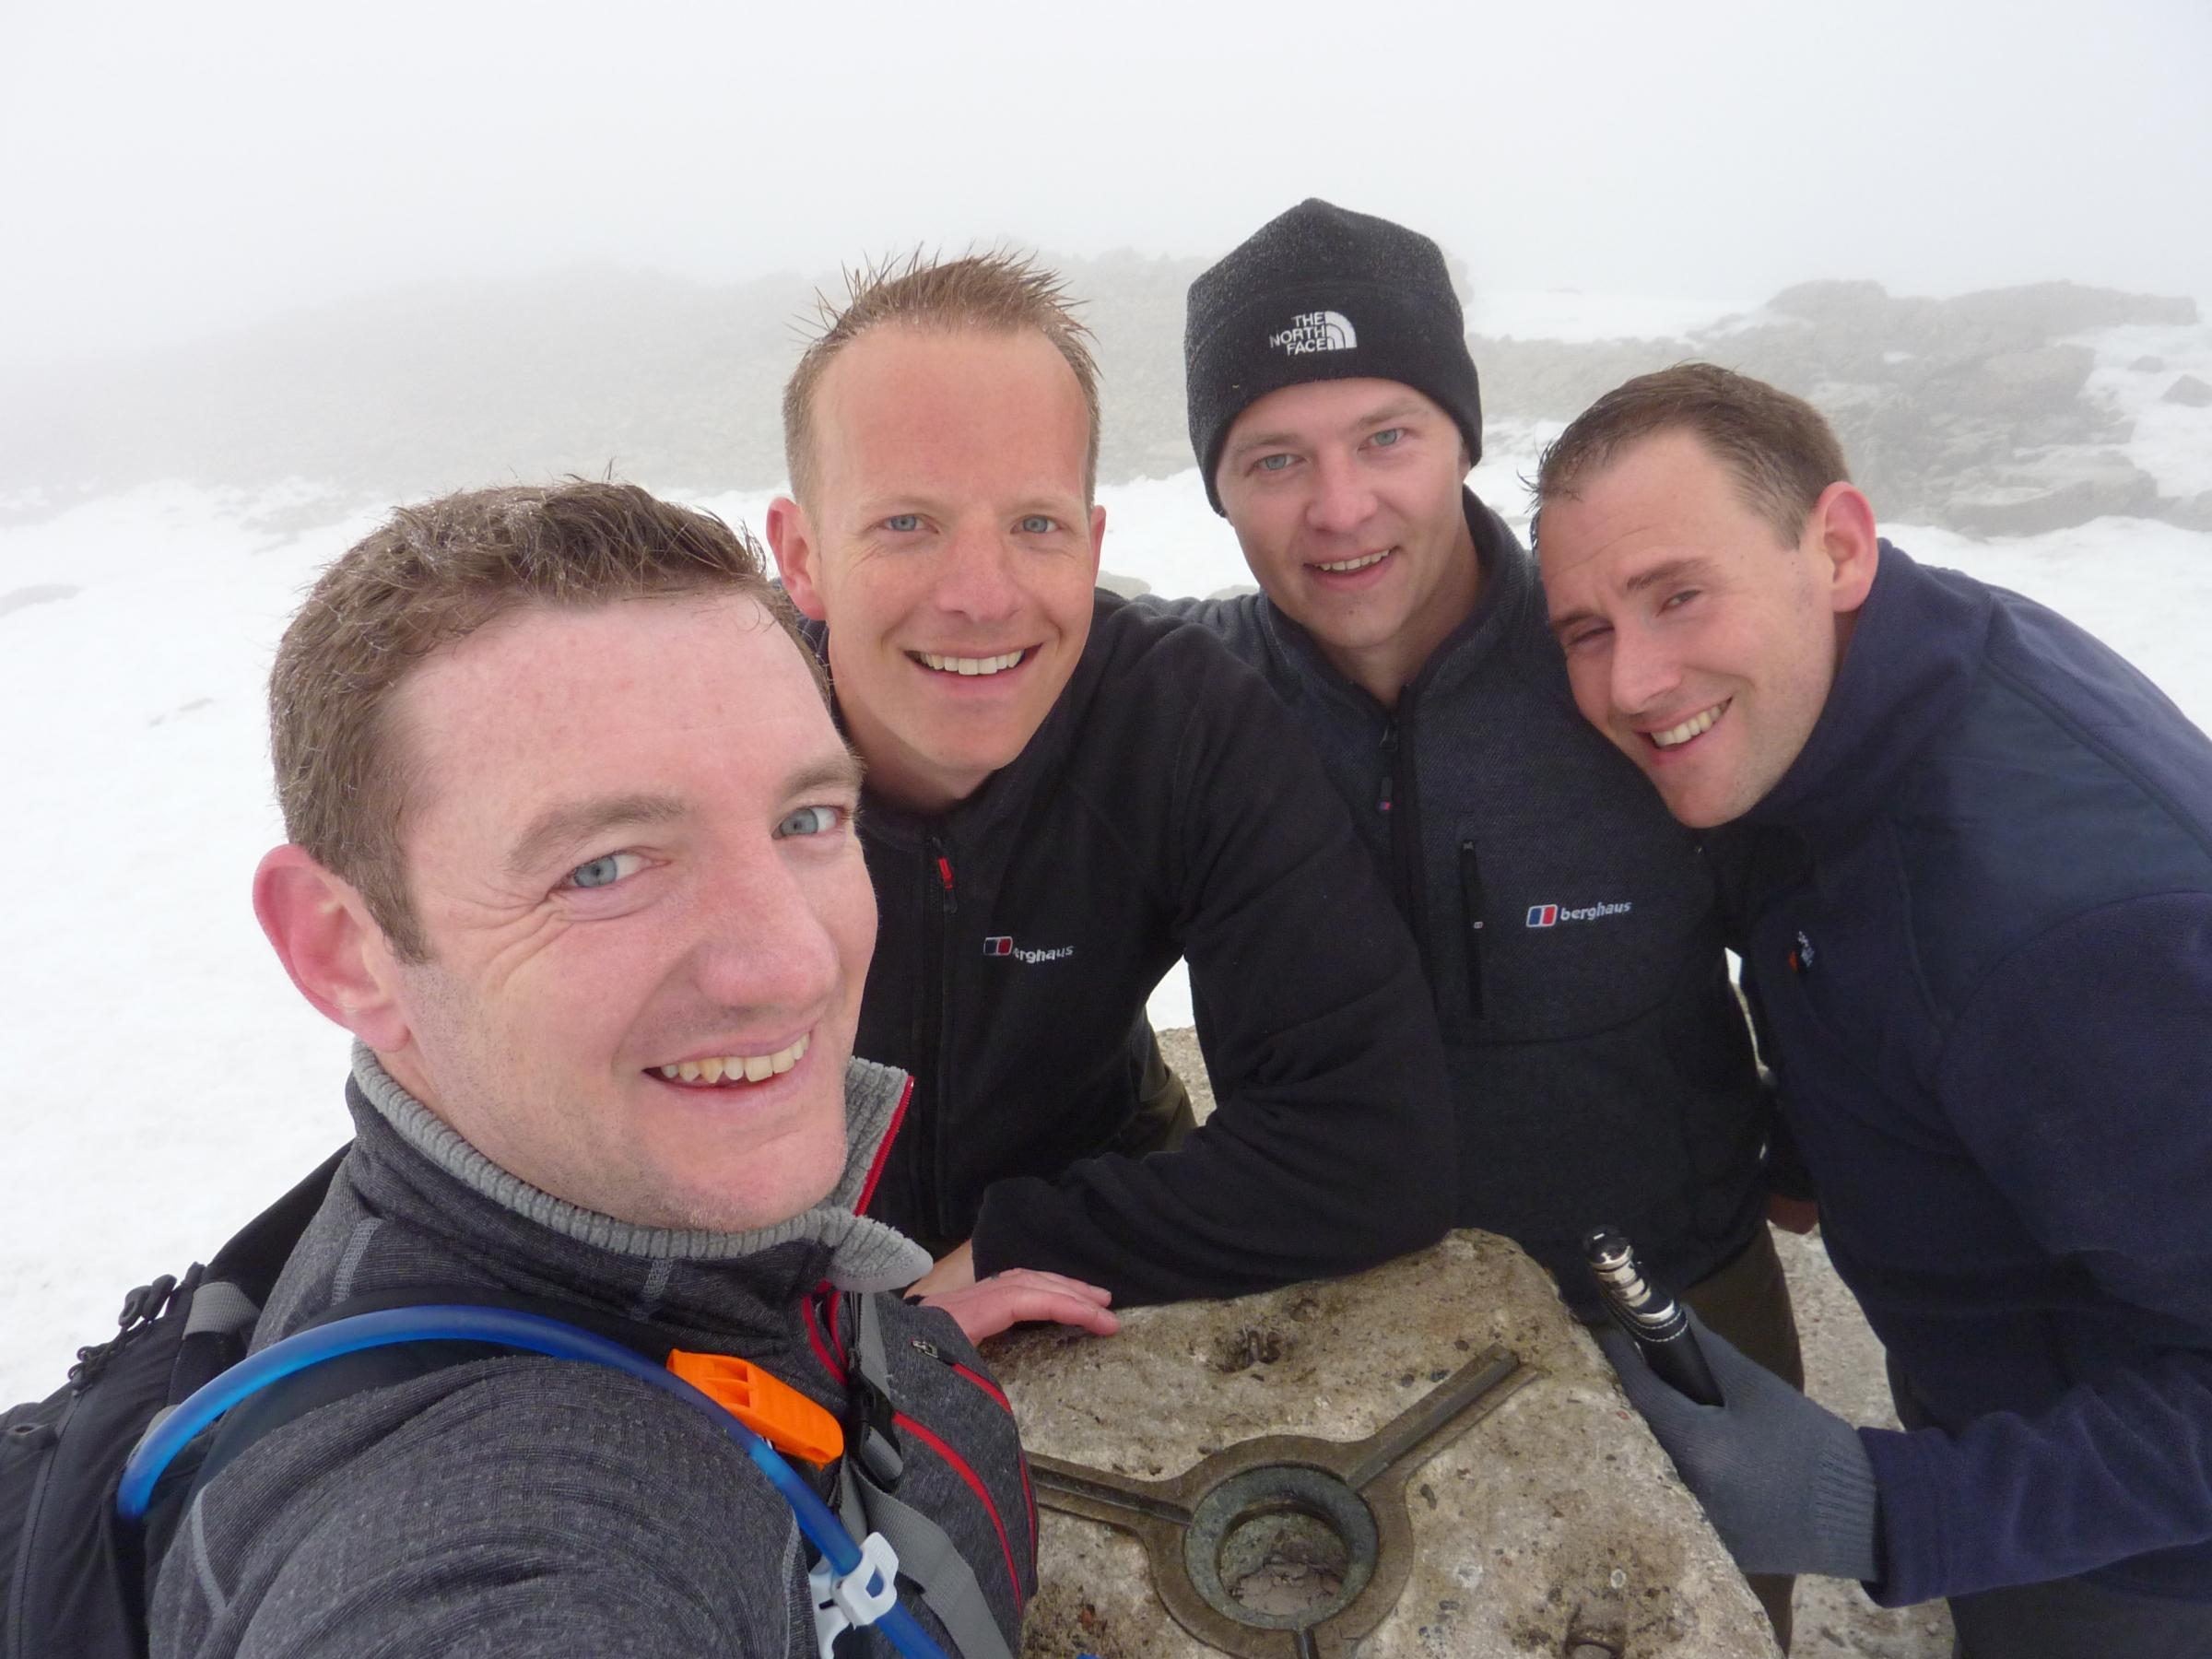 Friends at the top of Ben Nevis